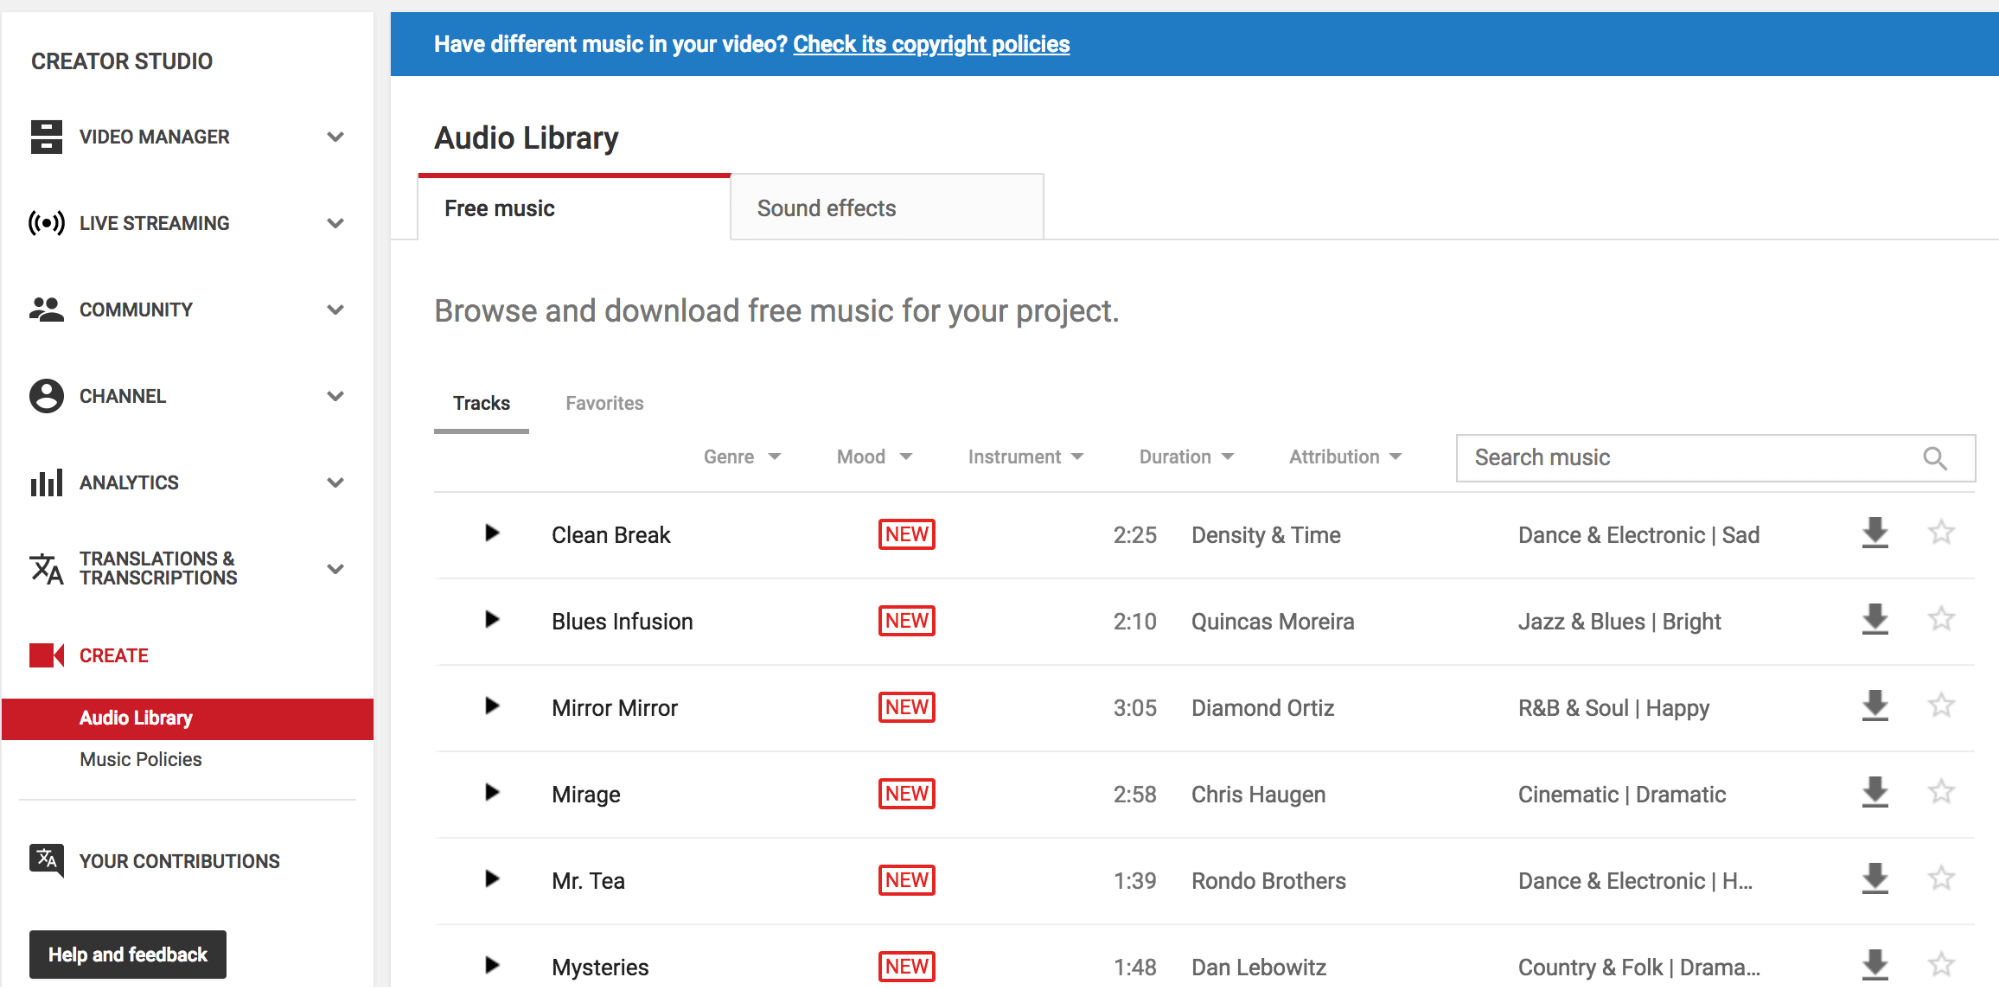 Guide To The Youtube Audio Library Royalty Free Music For Videos